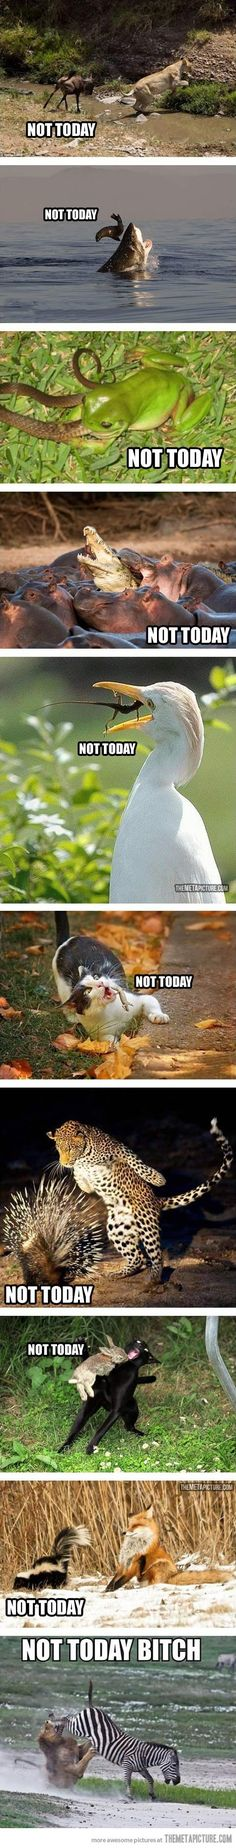 Animals that said 'Not Today':